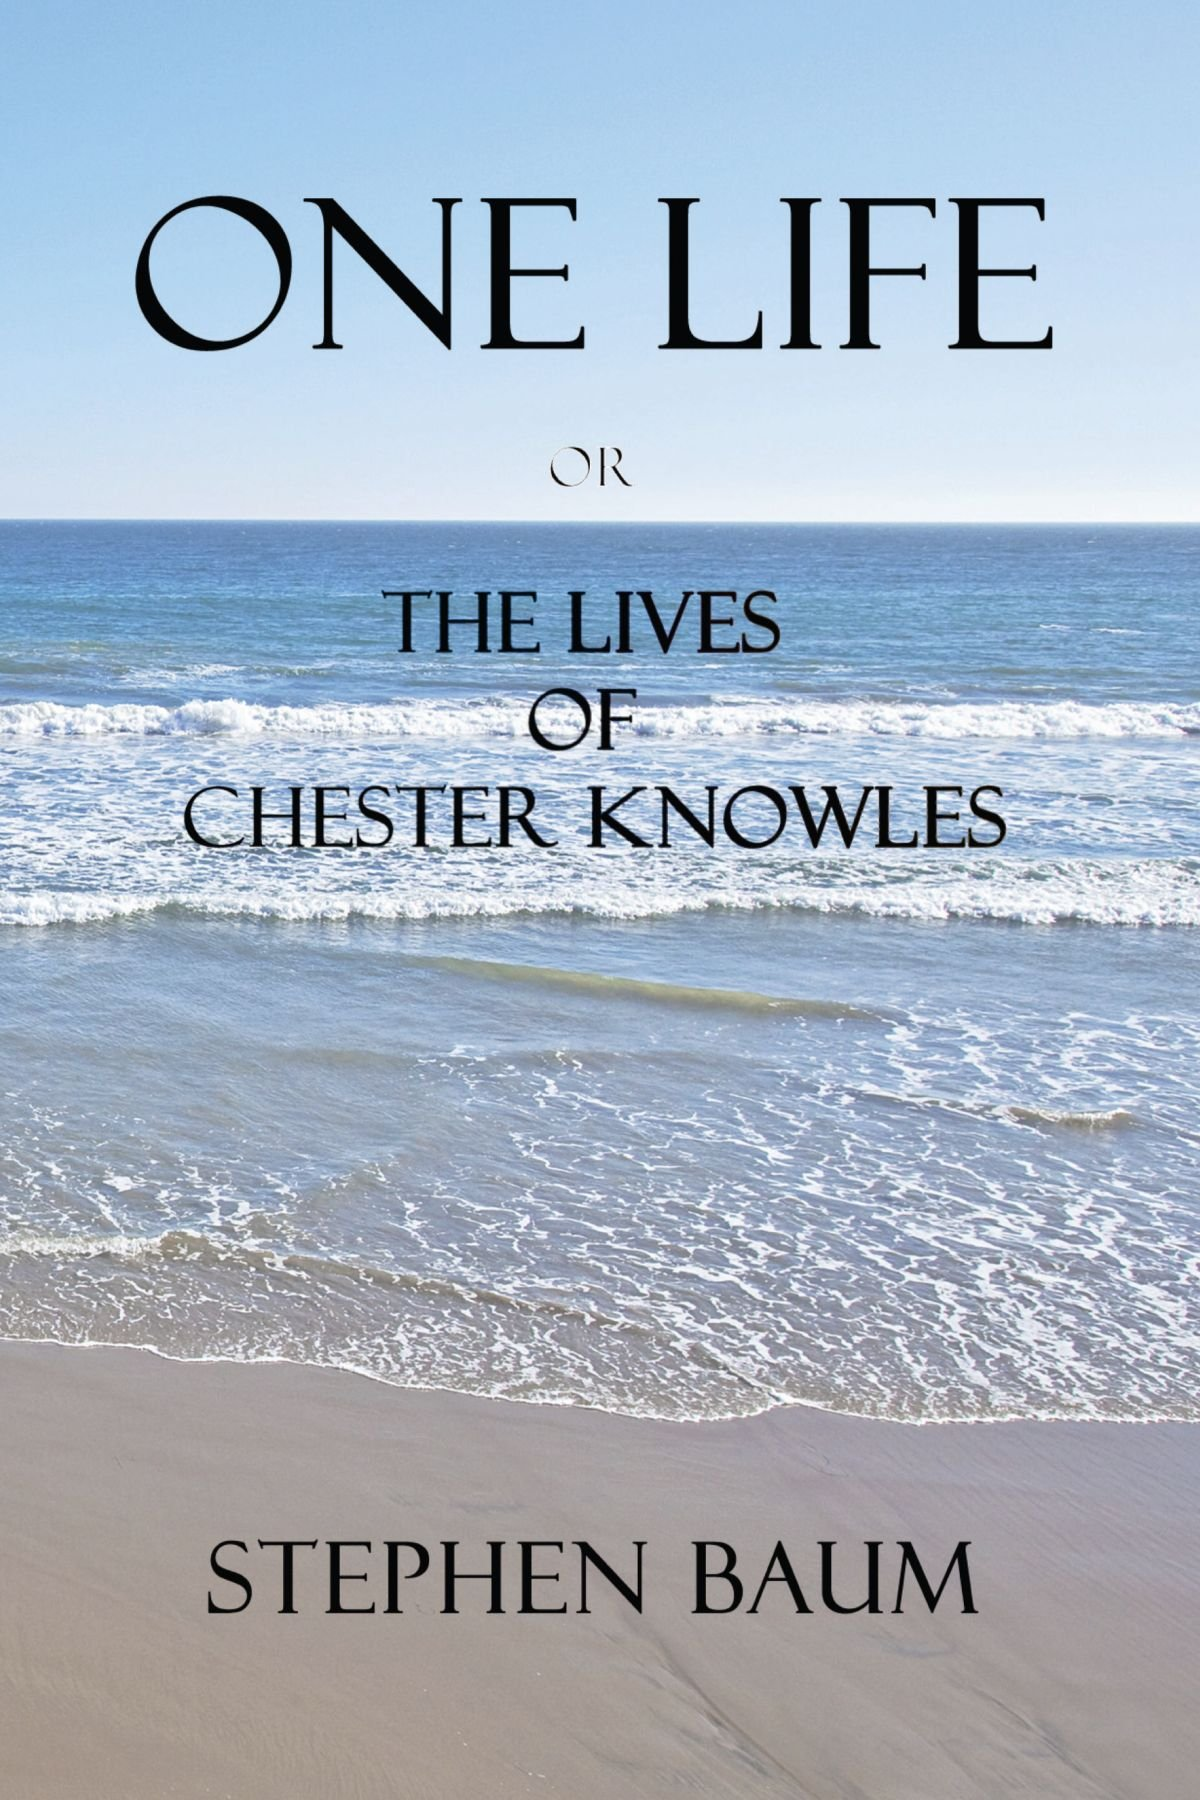 Download One Life or The Lives of Chester Knowles: a Novel ebook